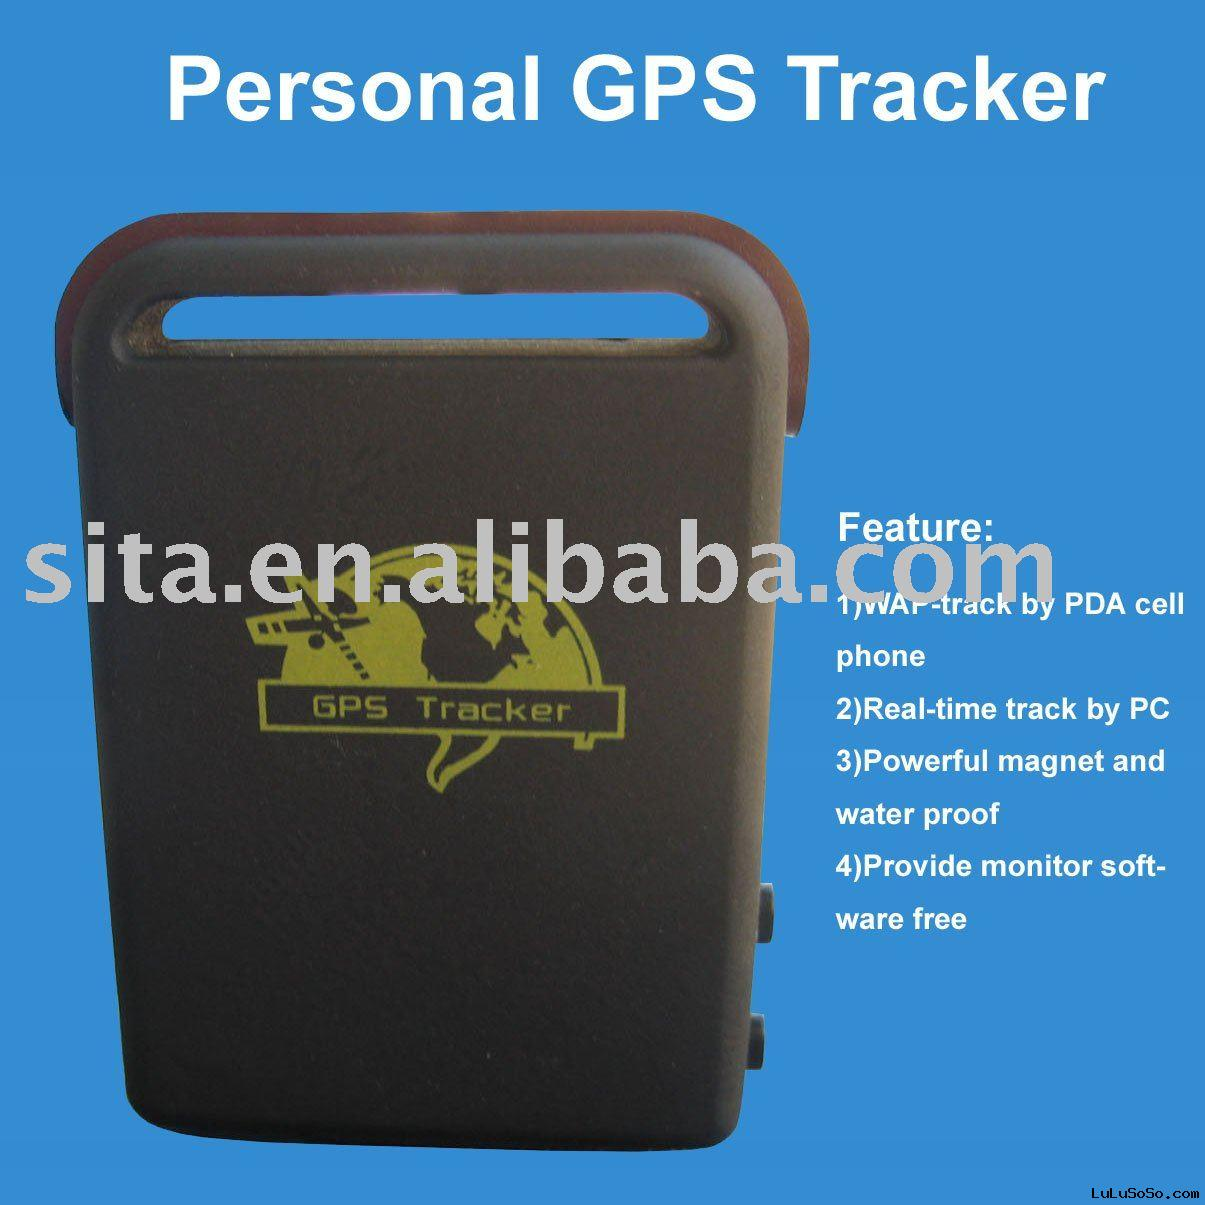 GPS tracker WAP-track by PDA cell phone./real-time track by PC